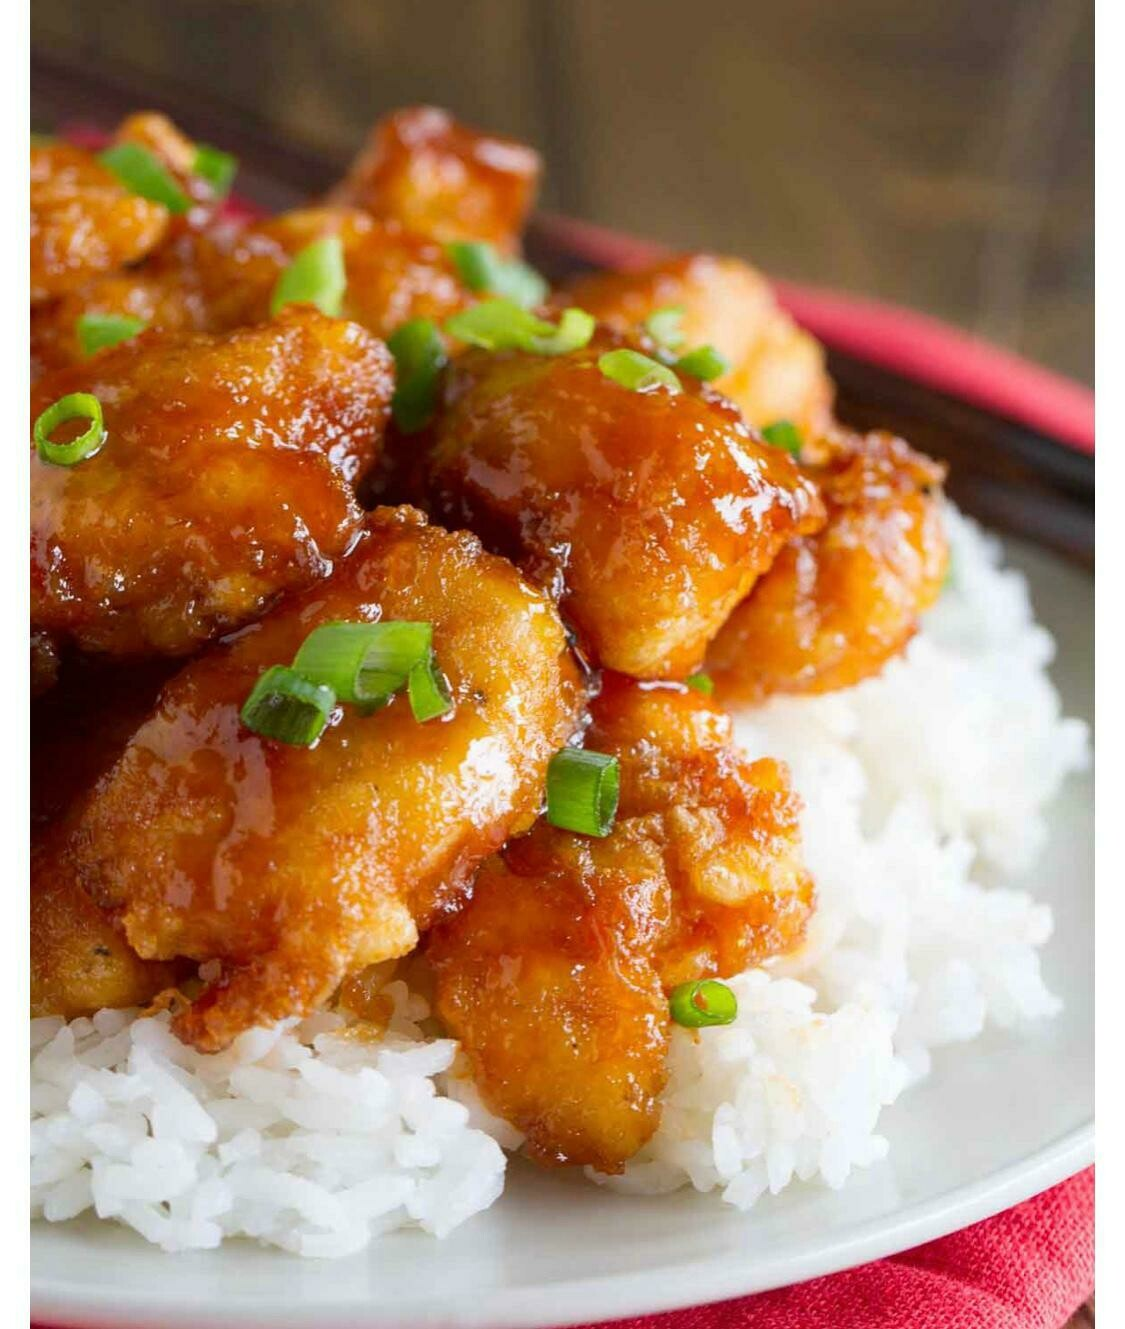 Meal-in-a-Bowl Sweet & Sour Chicken